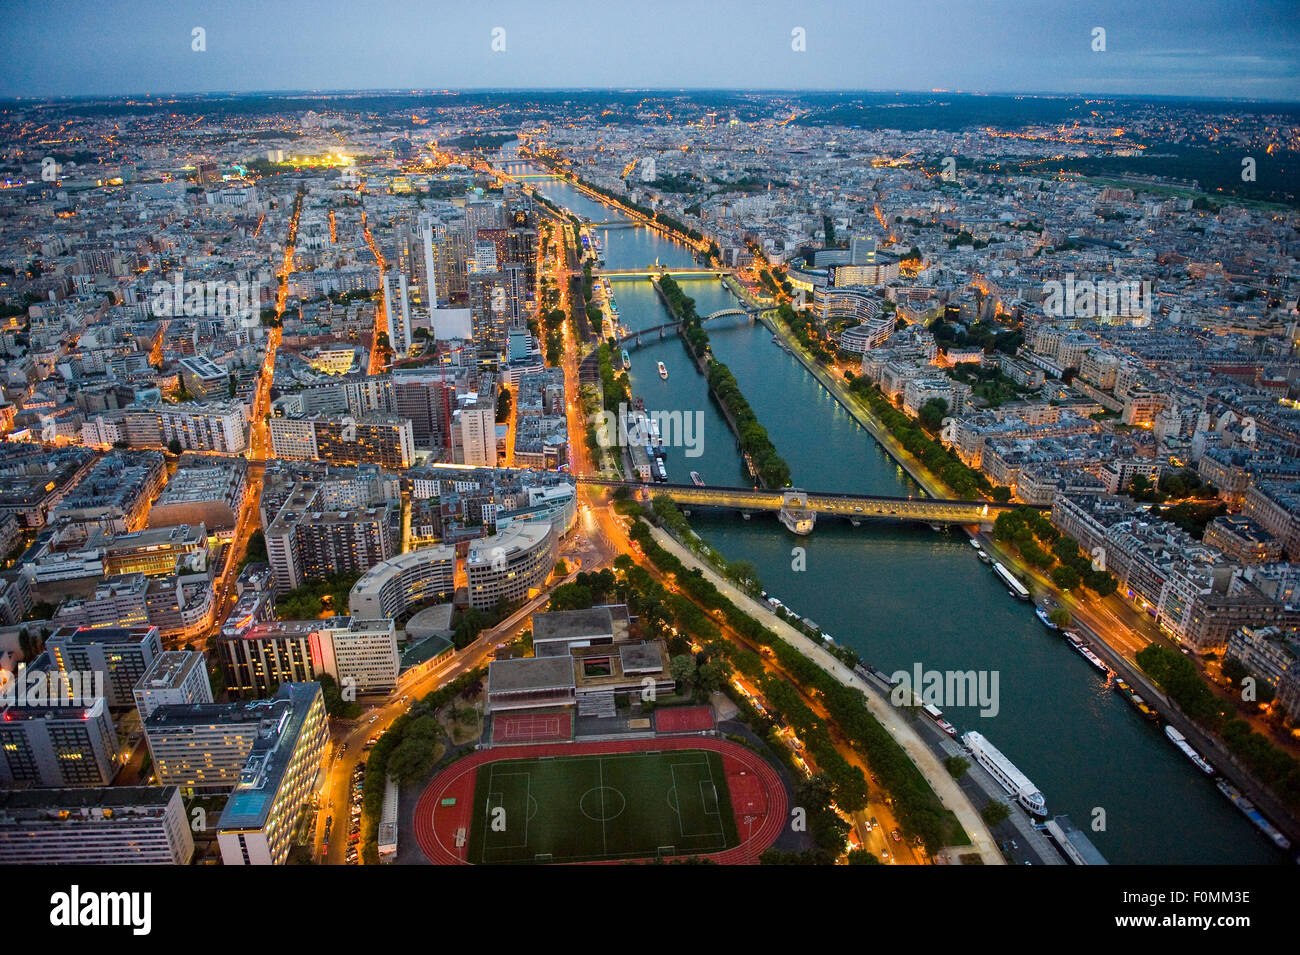 View from the Eiffel Tower in Paris Stock Photo